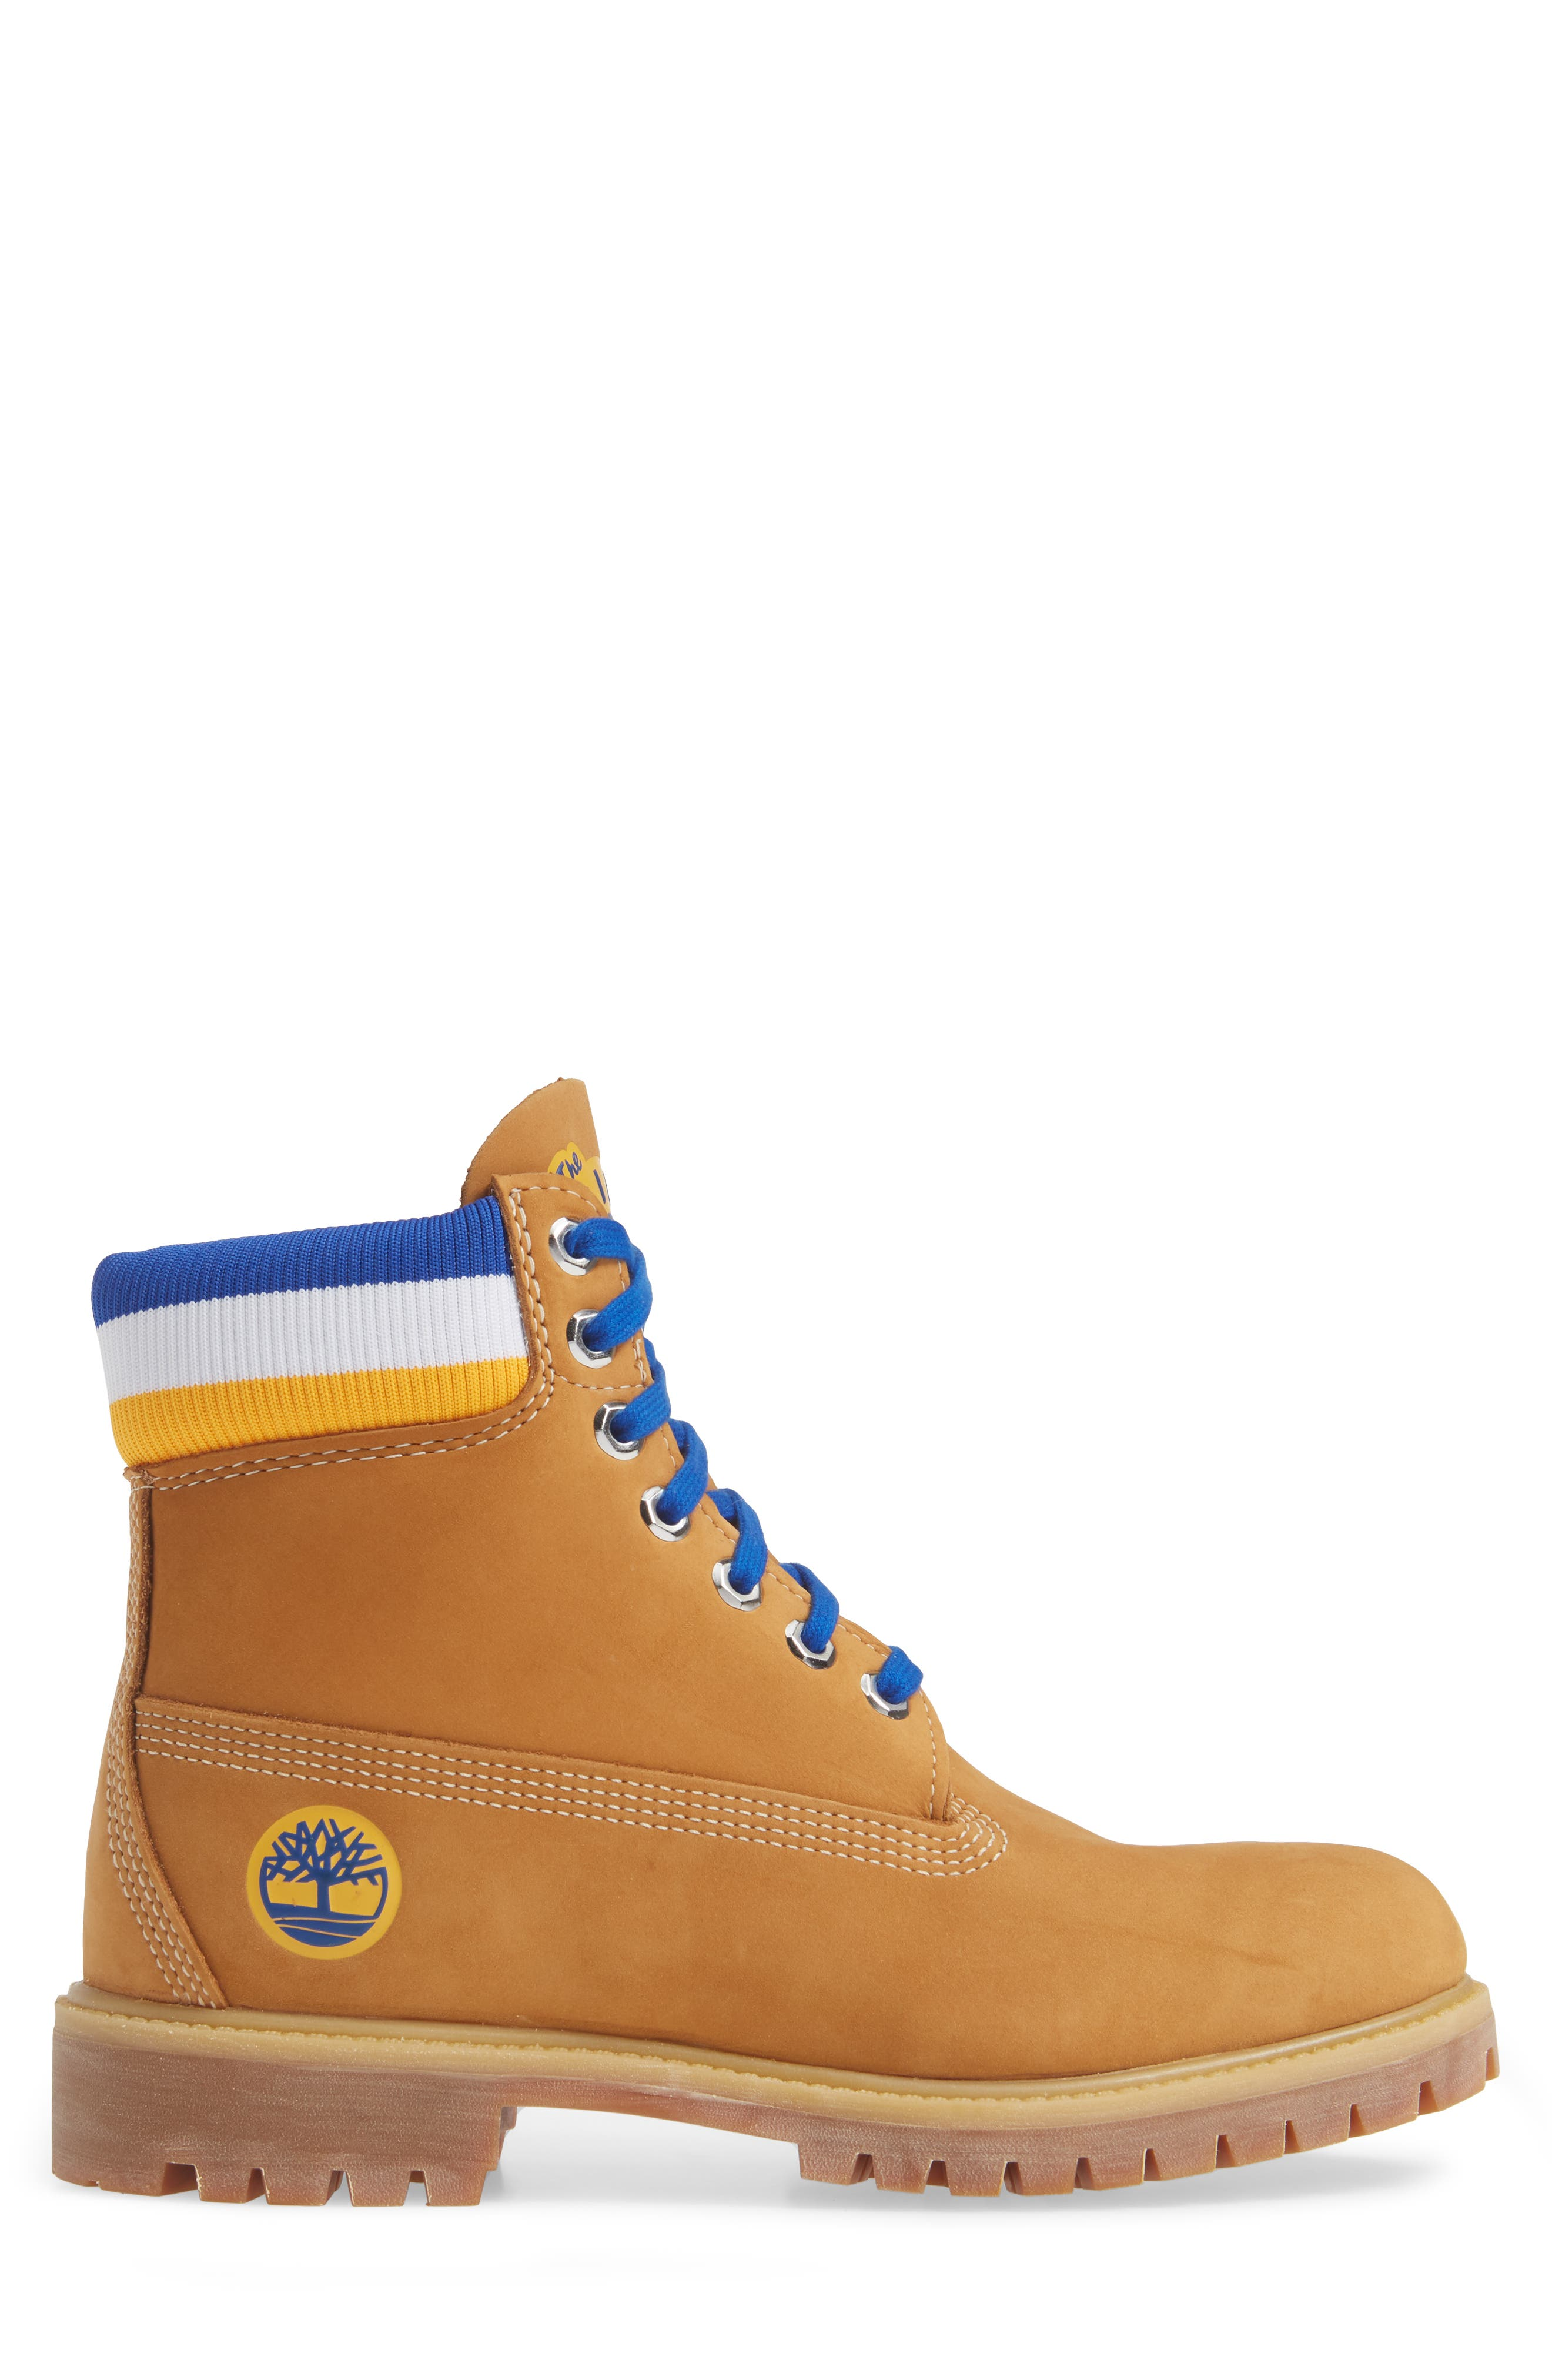 TIMBERLAND, Premium NBA Collection Boot, Alternate thumbnail 3, color, WHEAT NUBUCK/ GOLDEN STATE